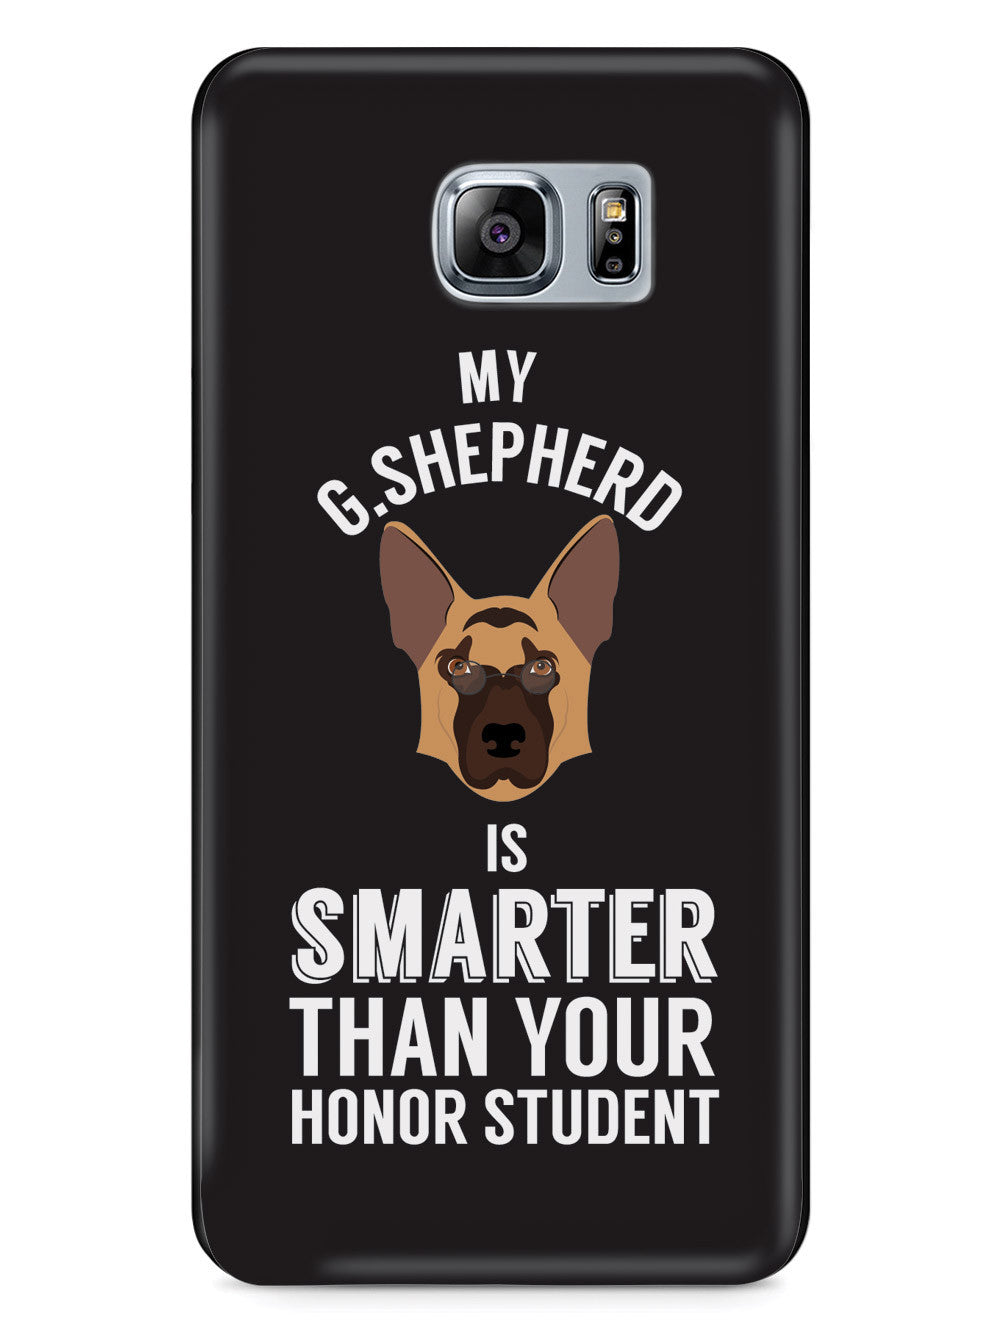 Smarter Than Your Honor Student - German Shepherd Case